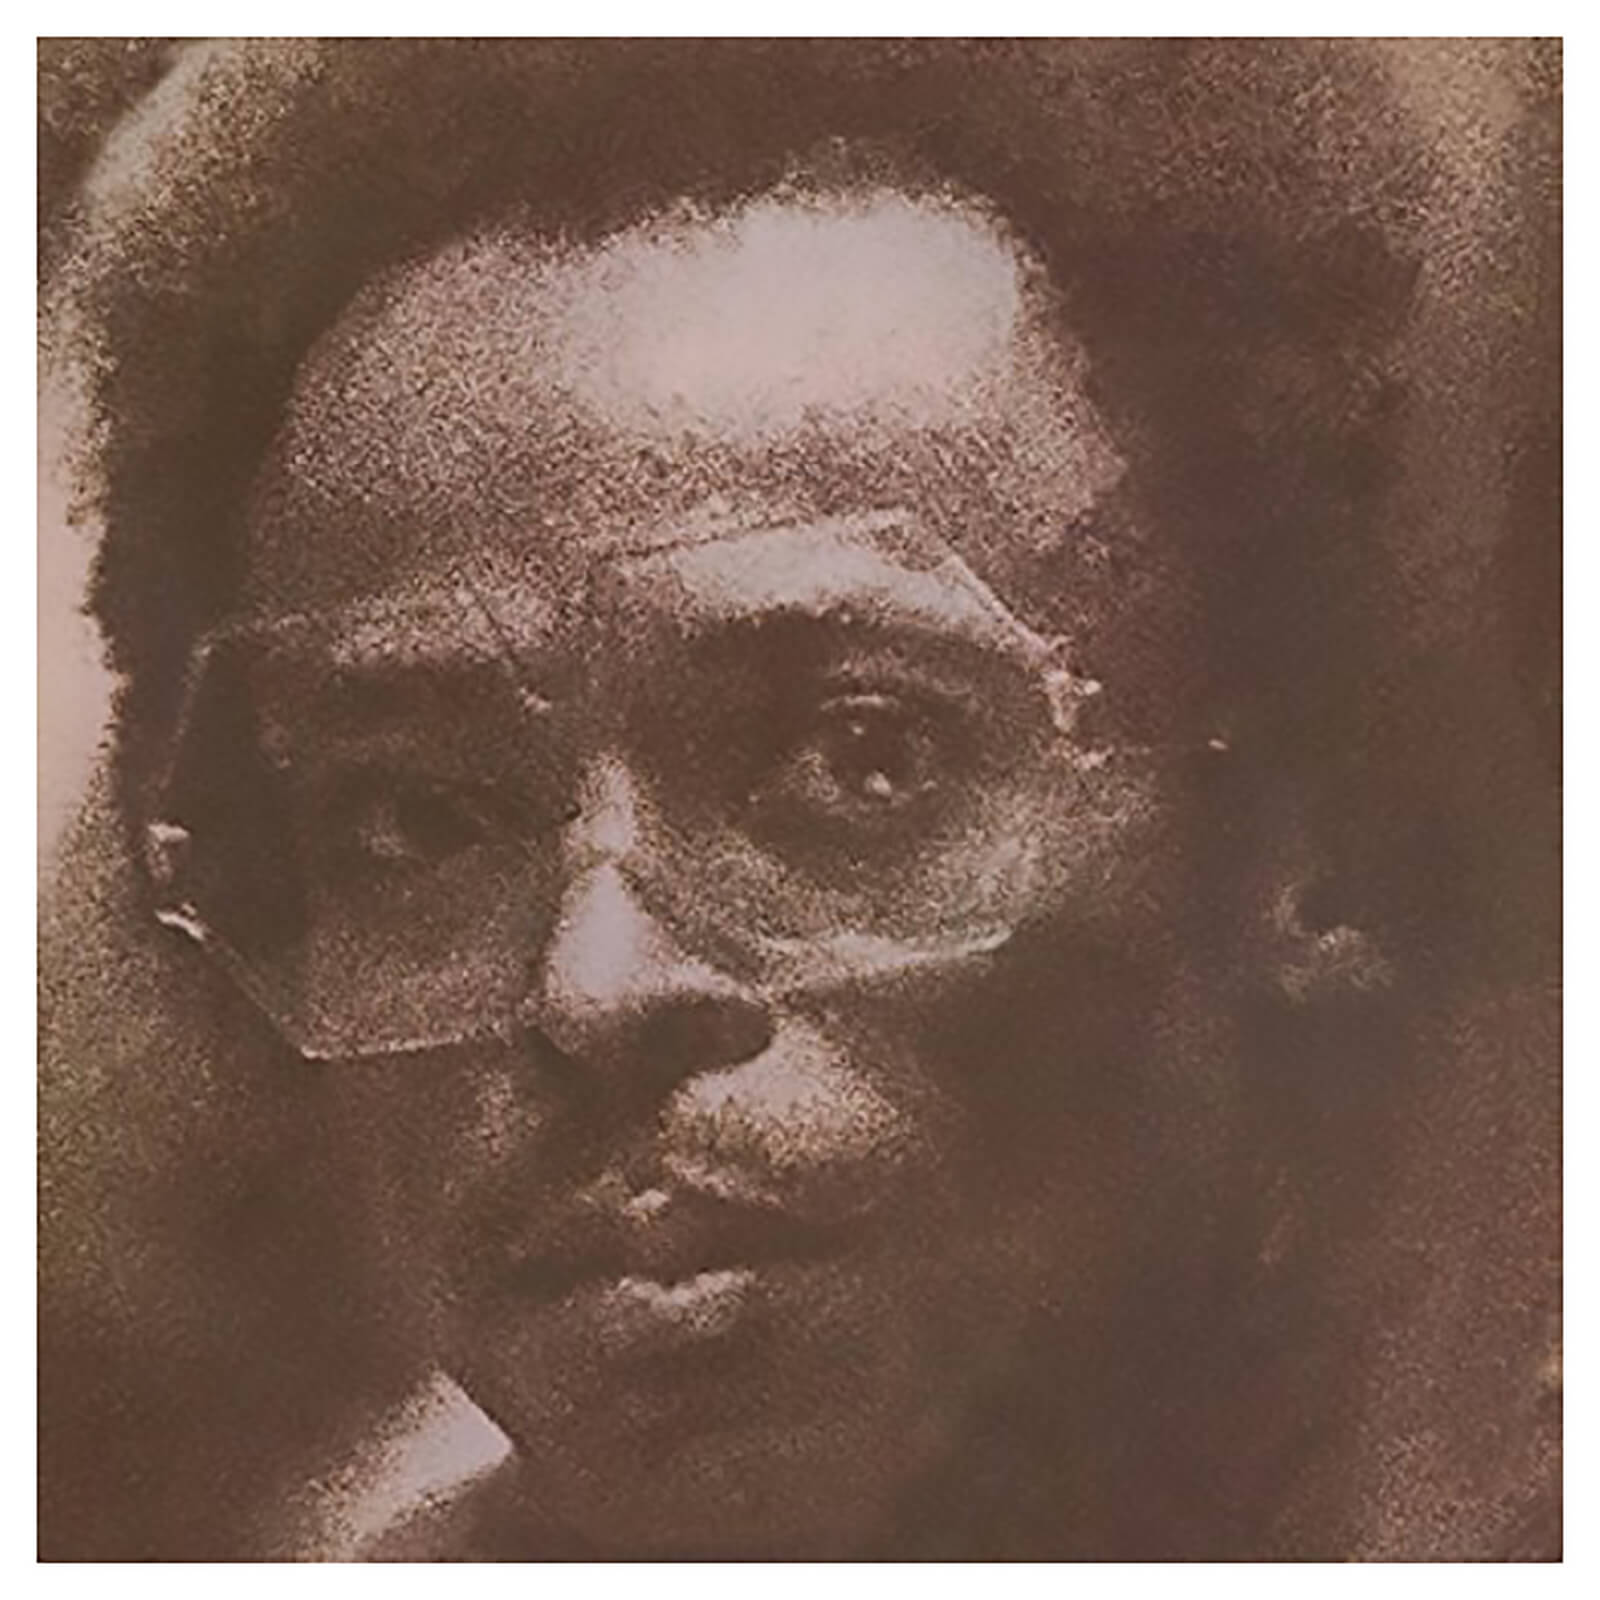 Miles Davis - Get Up With It - Vinyl